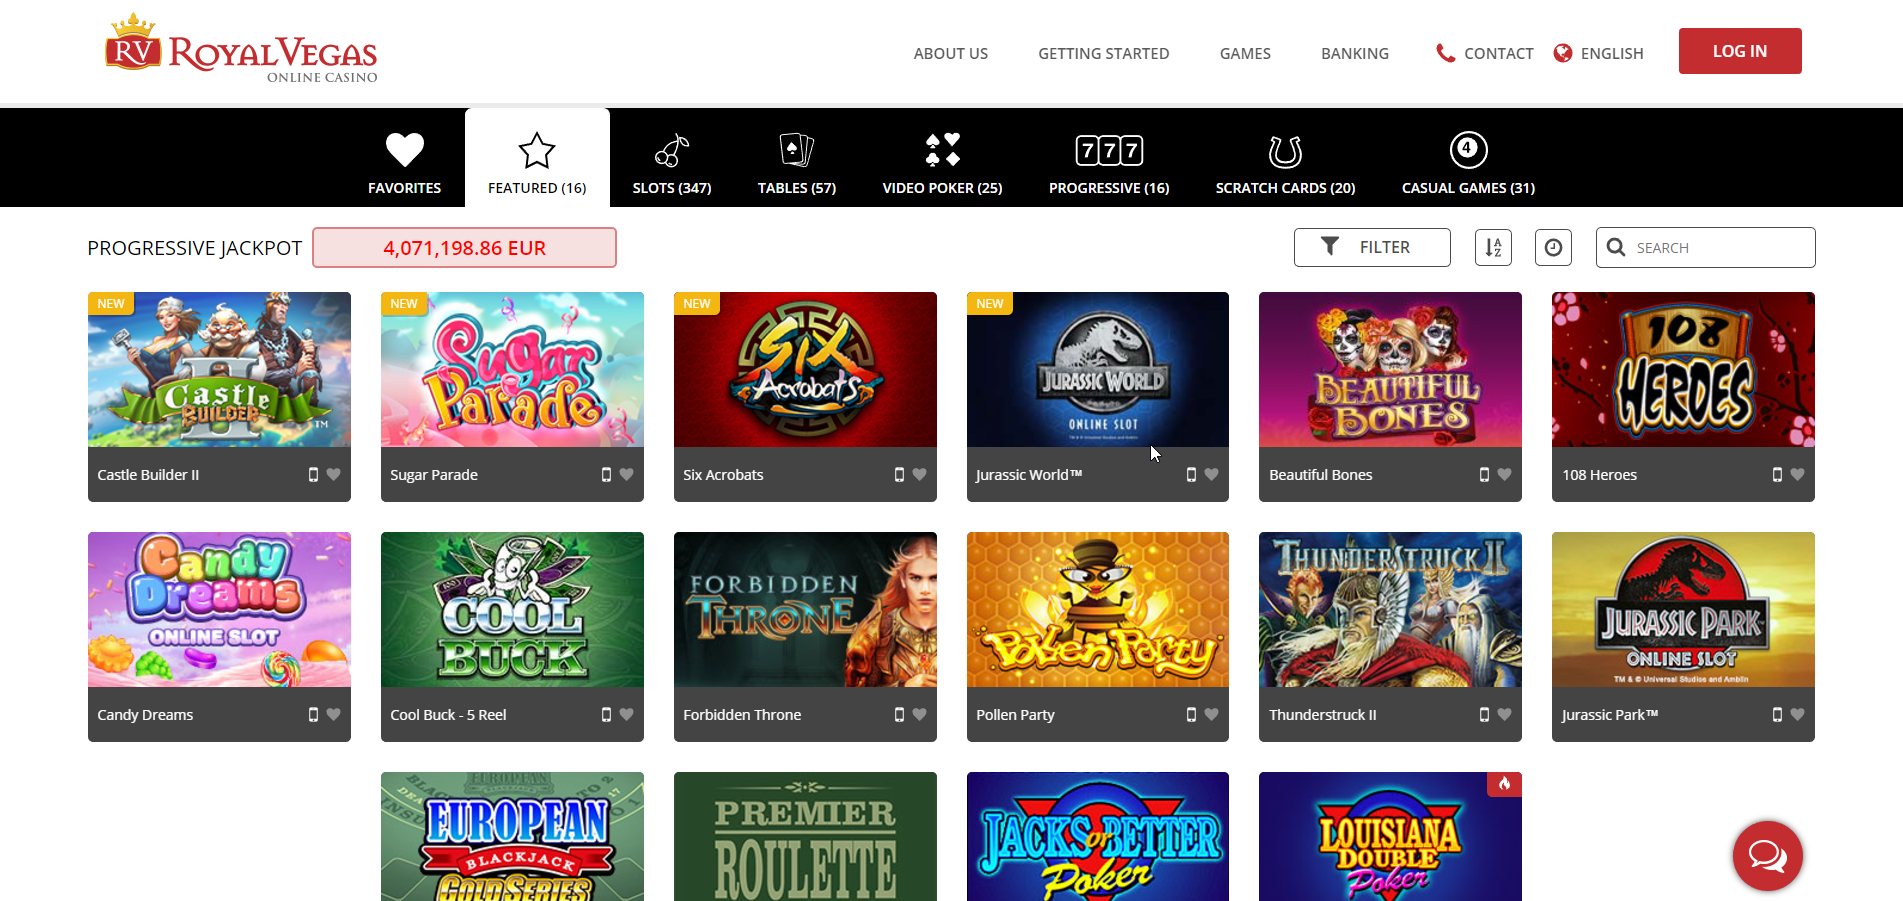 royal vegas casino online games